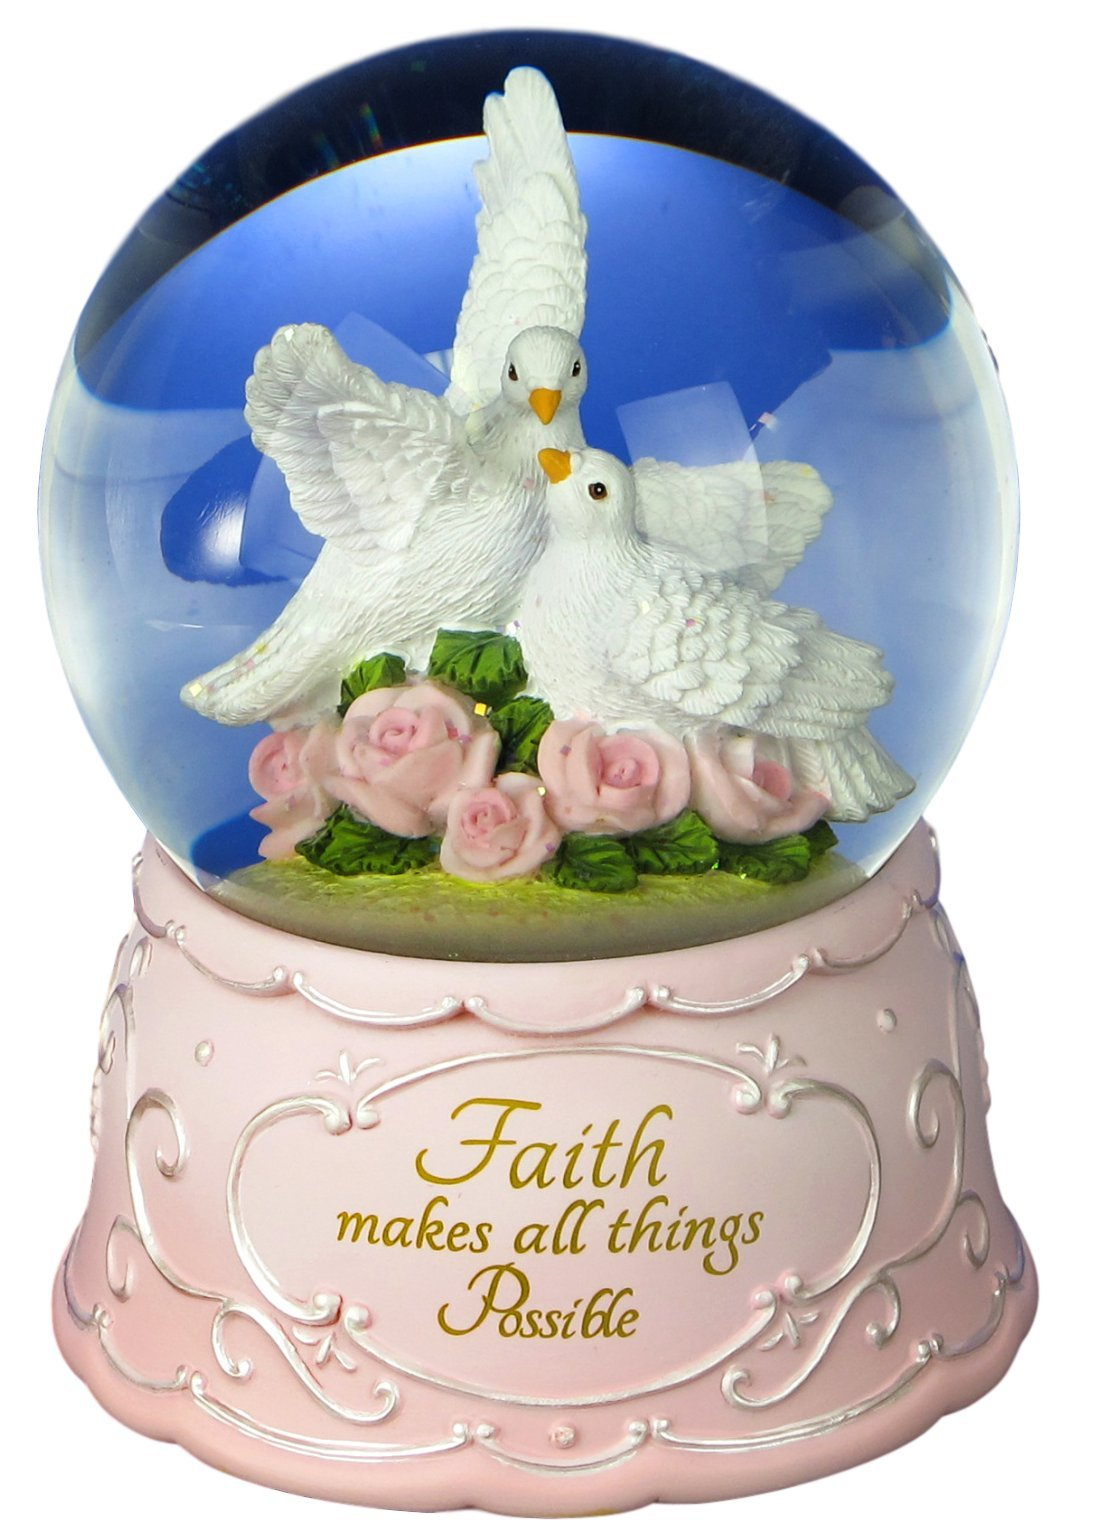 Faith Makes All things Possible Doves Water Globe by The San Francisco Music Box Company by The San Francisco Music Box Company (Image #1)